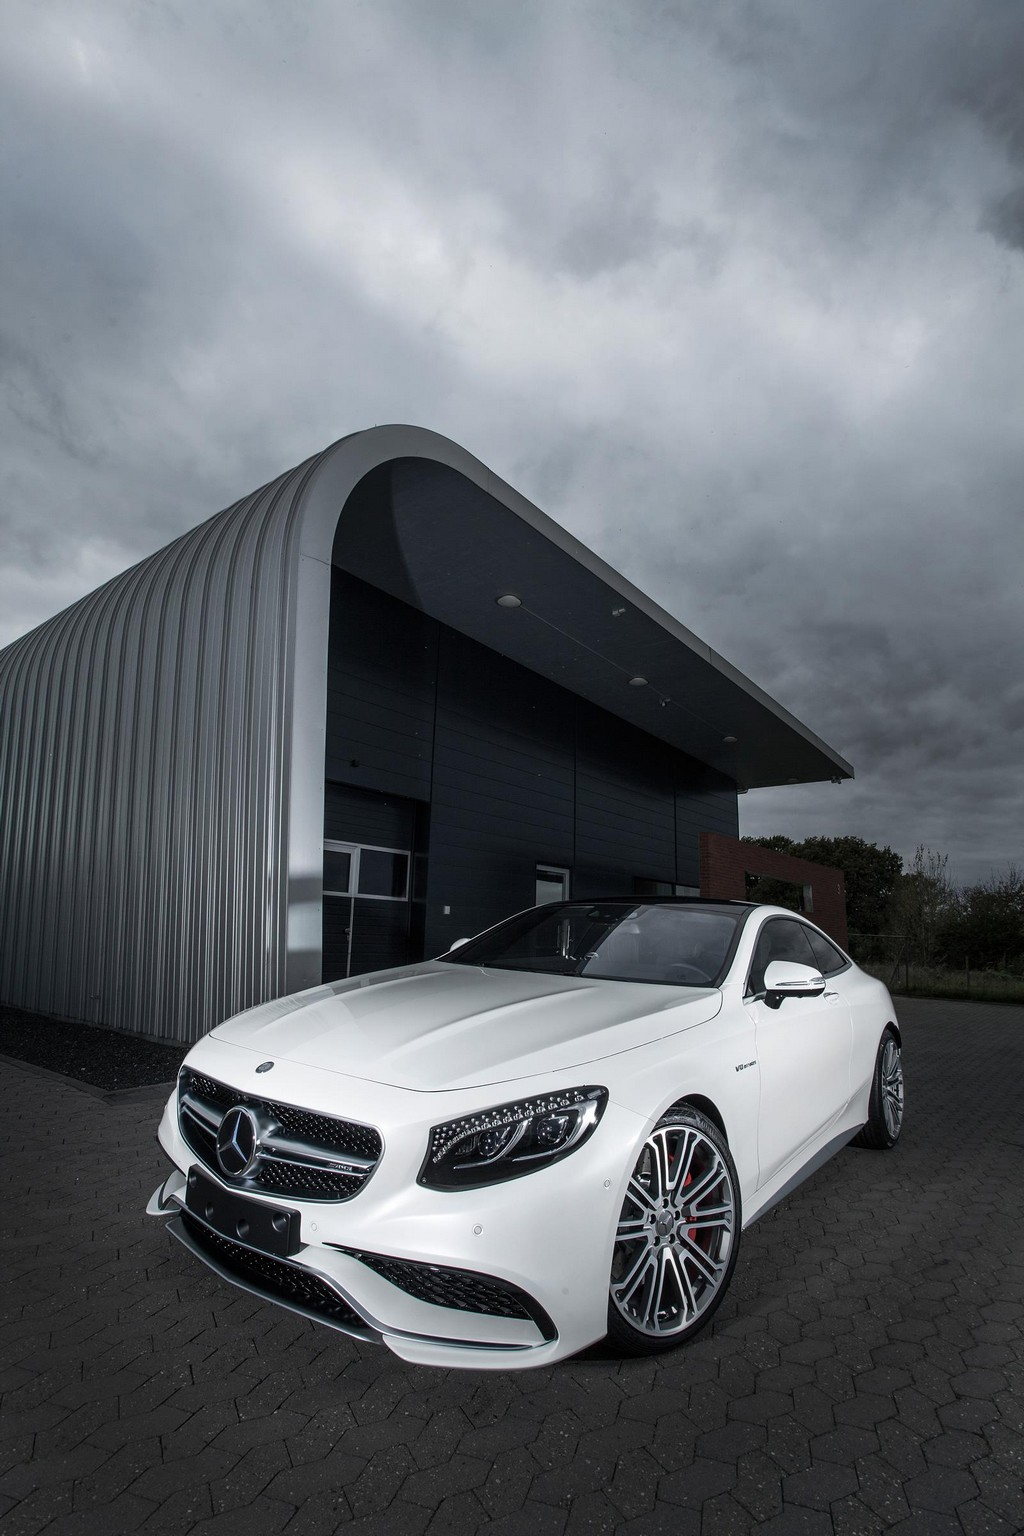 2015 Mercedes Benz S63 AMG Coupe 7 720 HP More For 2015 Mercedes Benz S63 AMG Coupe